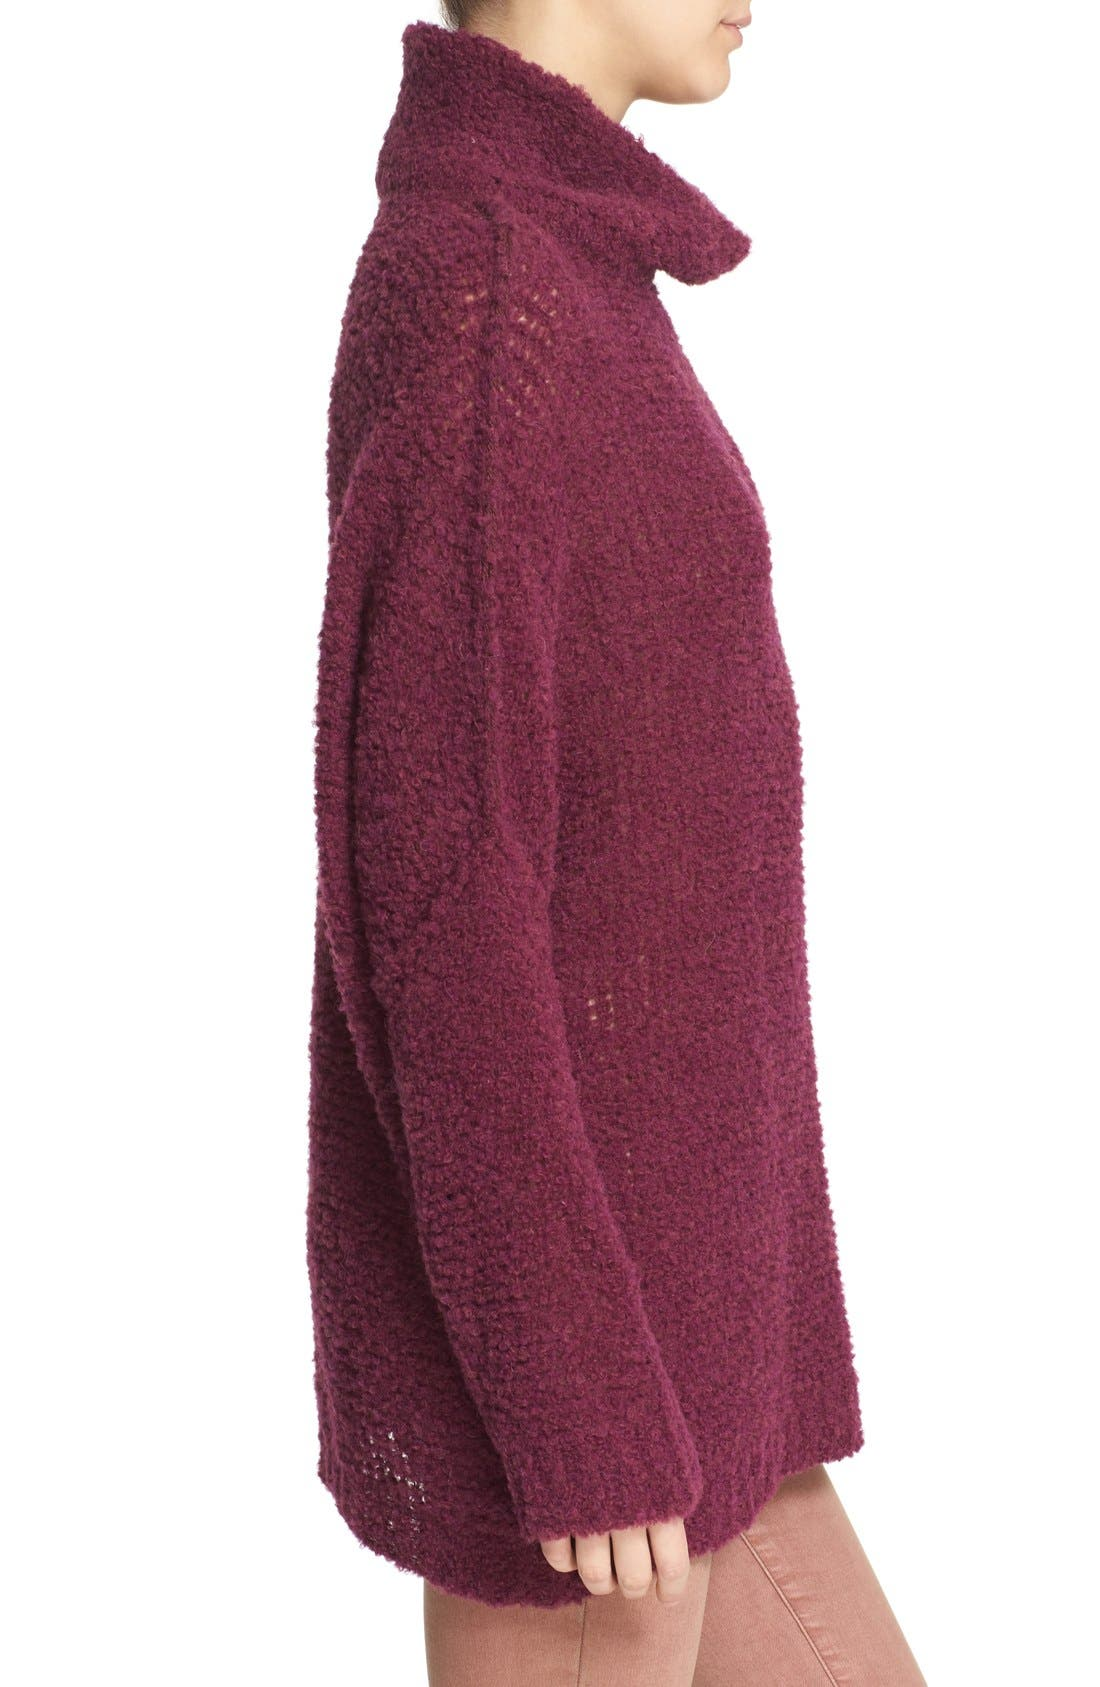 'She's All That' Knit Turtleneck Sweater,                             Alternate thumbnail 9, color,